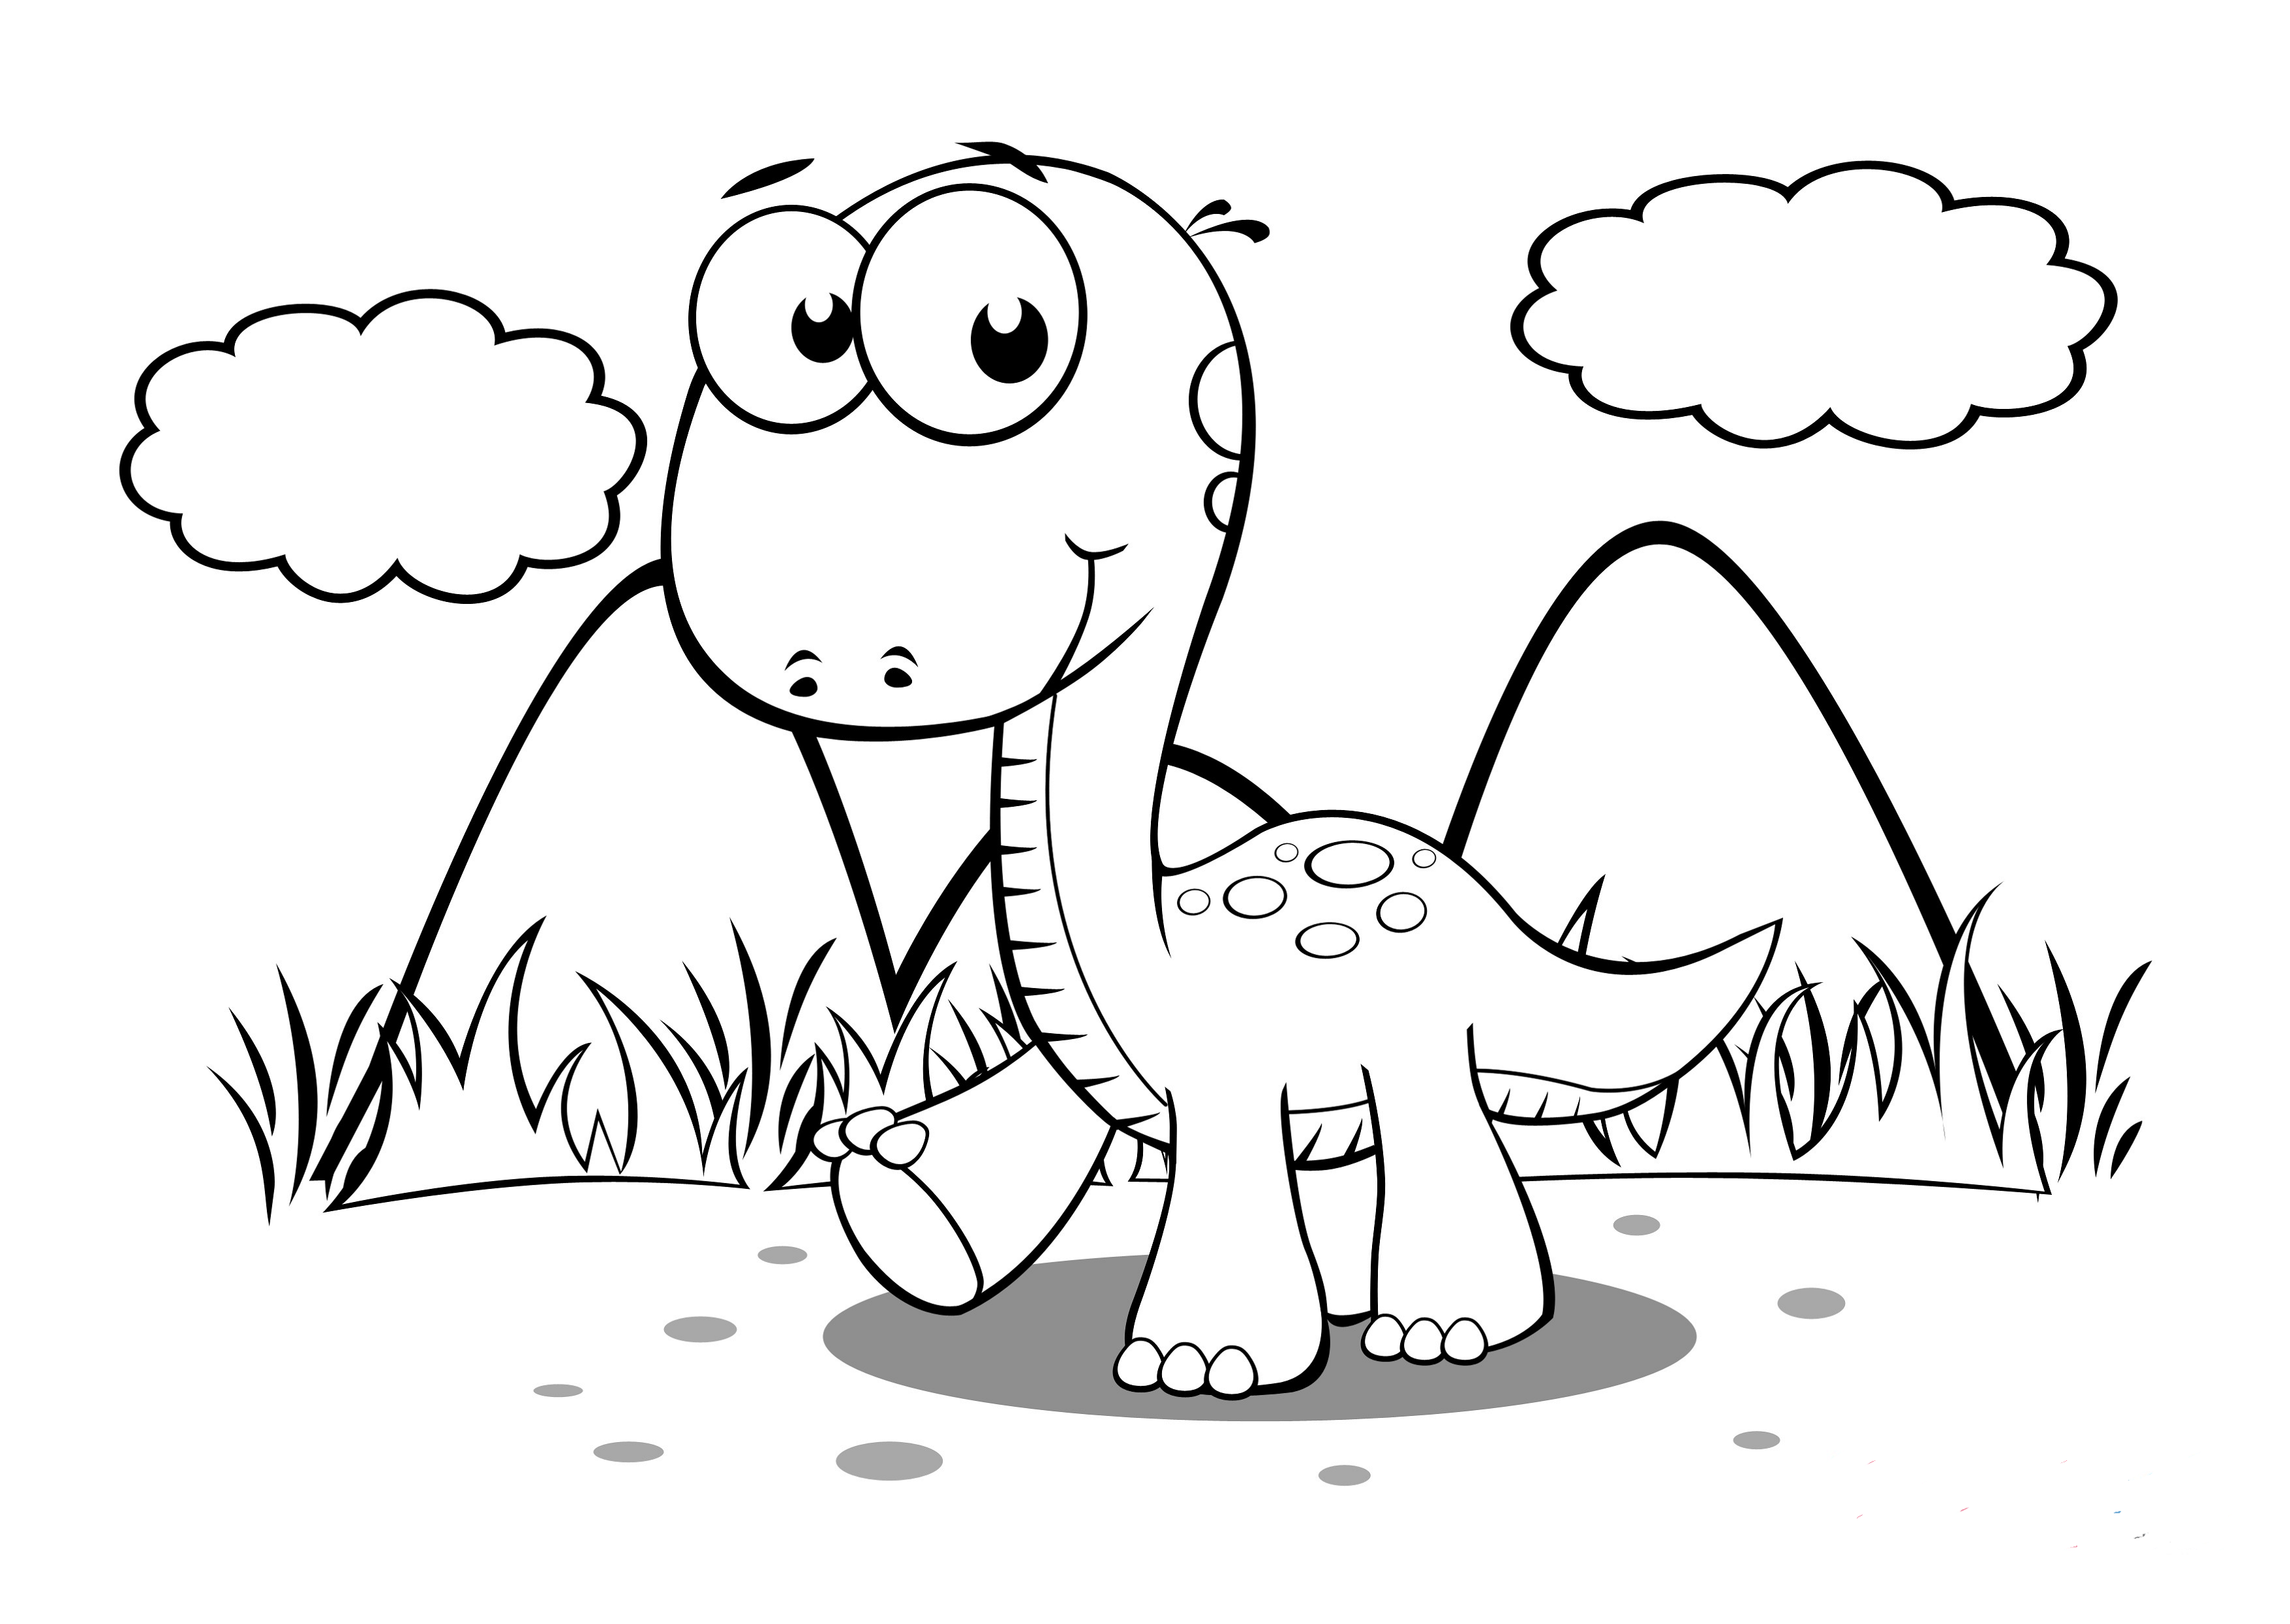 dinosaur coloring pages for preschoolers printable dinosaur coloring pages for kids cool2bkids pages coloring dinosaur for preschoolers